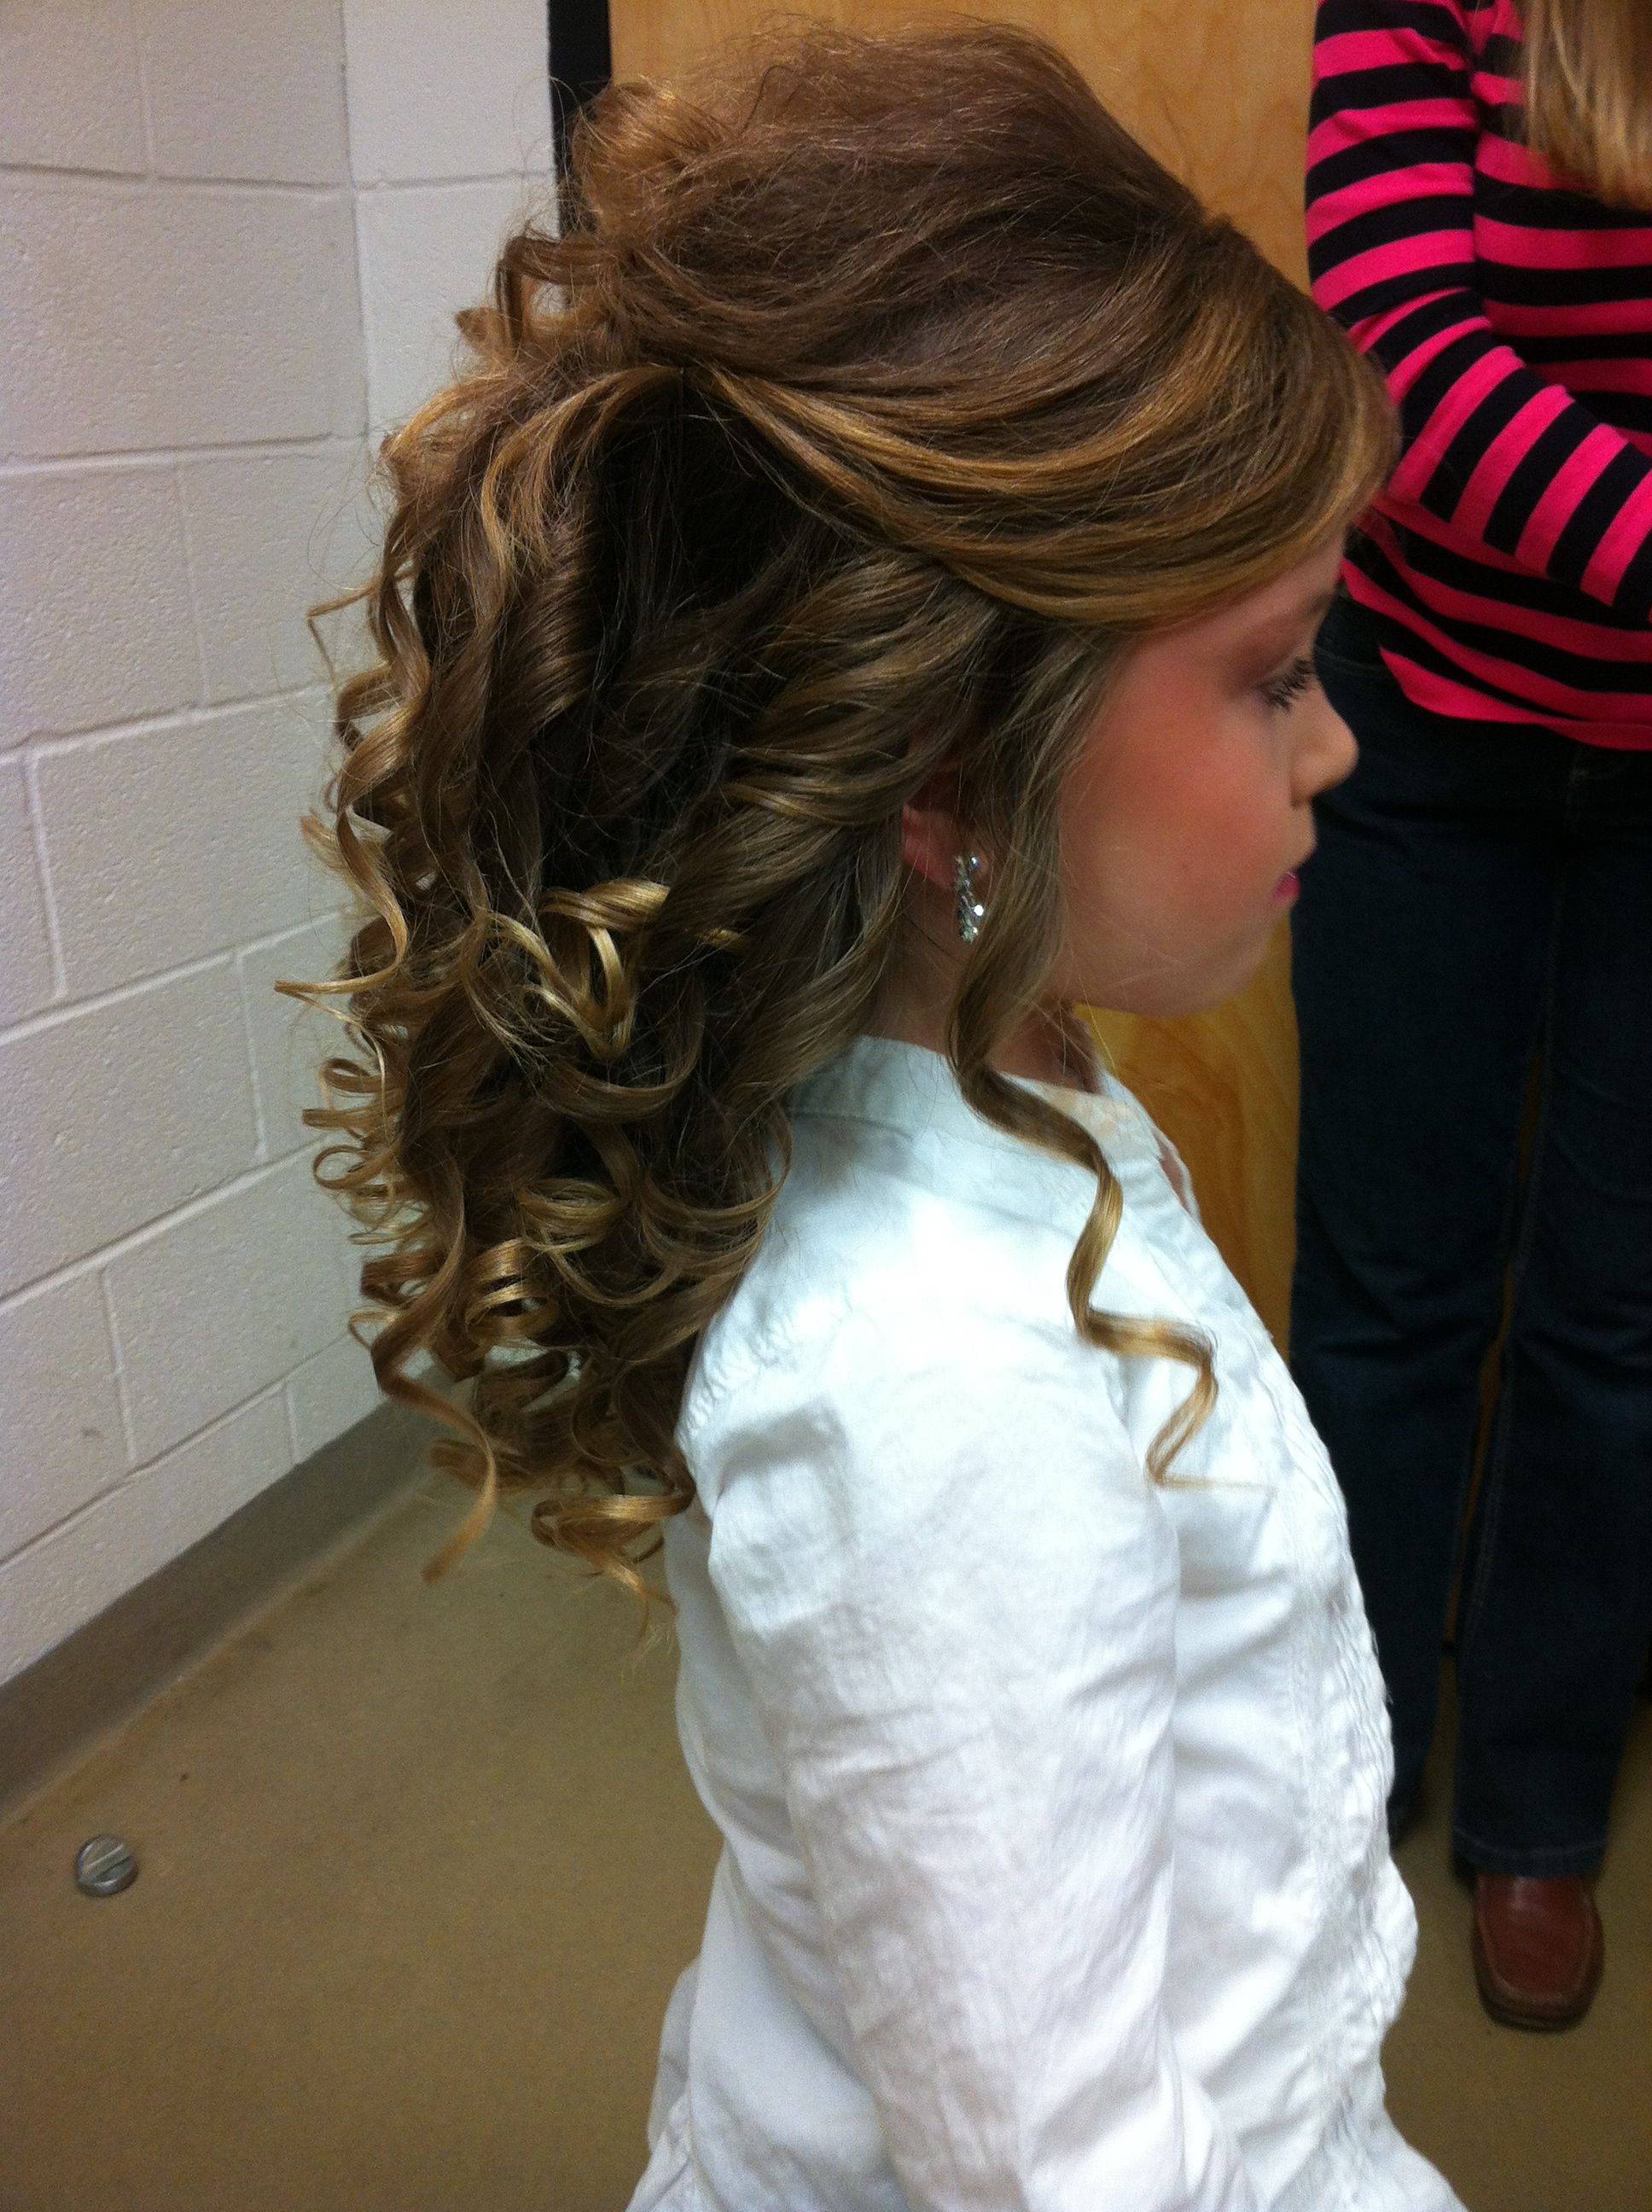 pageant hair. love the side view but the top needs smoothing